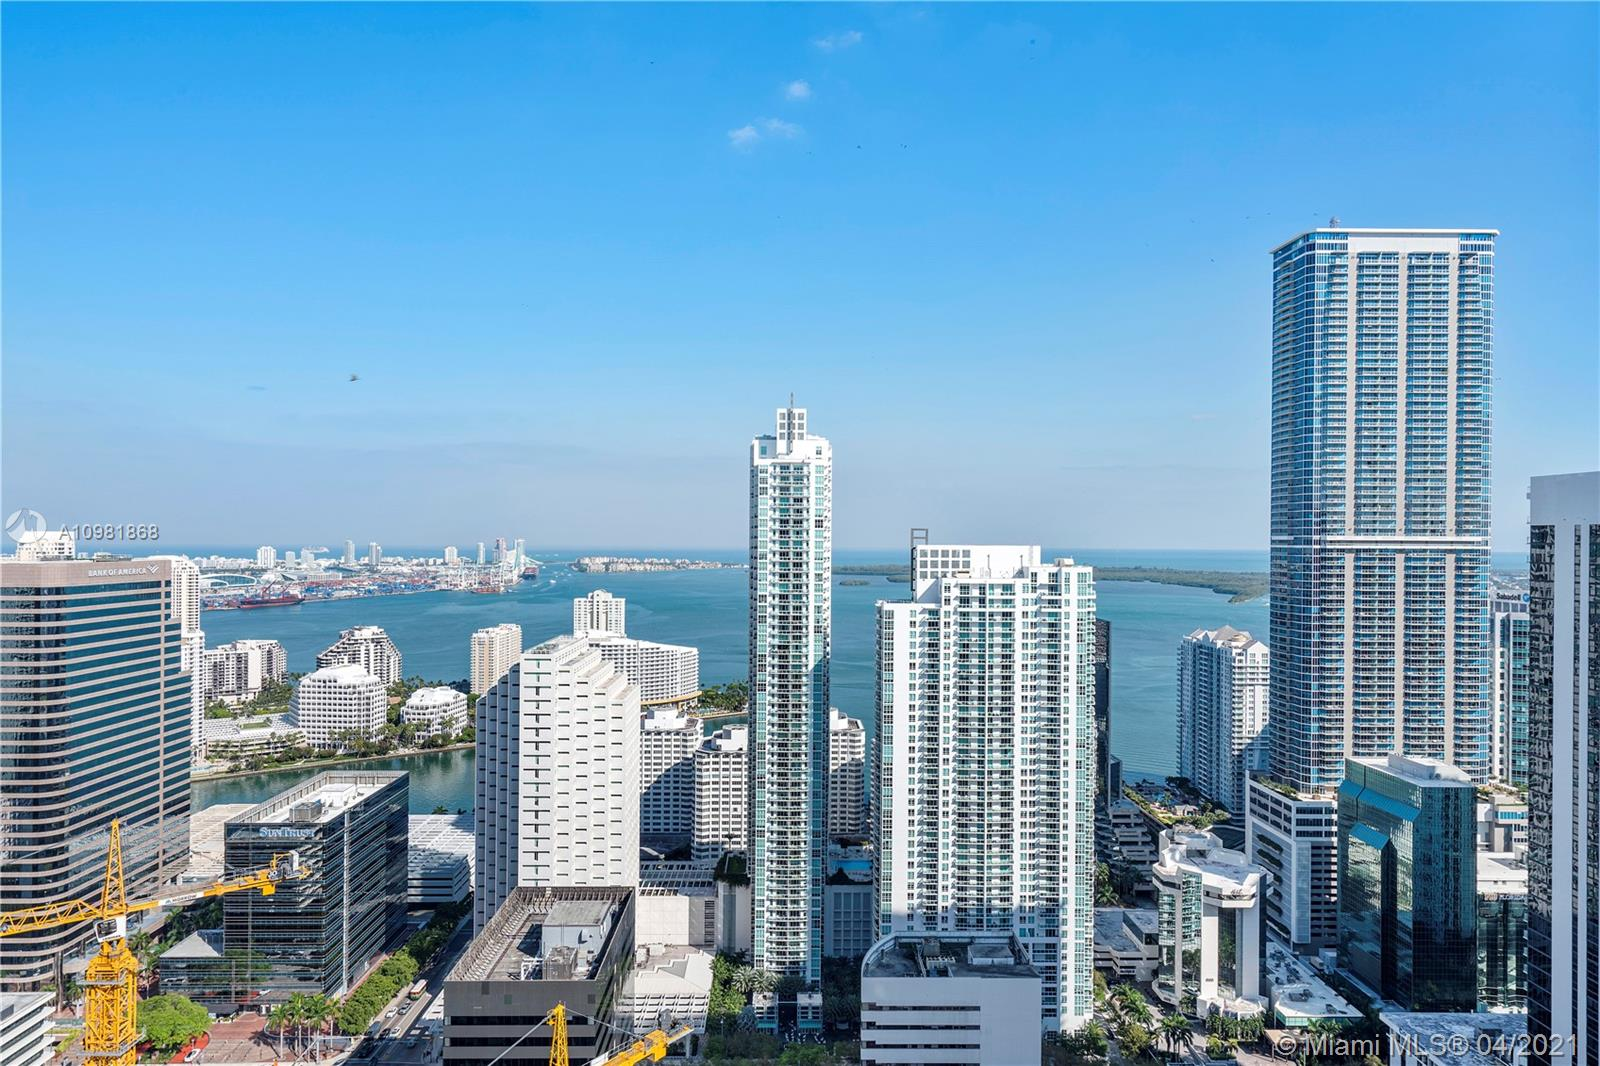 Million-dollar views Lower Corner PH unit in trendy Brickell Heights. This magnificent 3BD/3.5BA + DEN unit on the 45th floor boasts High ceilings, wrap around balcony, porcelain floors & unobstructed views of Biscayne Bay, Fisher Island & the Brickell/Downtown skyline. New unit features contemporary Italian-style cabinetry, floor-to-ceiling glass, premium BOSCH appliances, glass-enclosed showers, 1 assigned parking space with a lift for a 2nd car and more. Excellent location with onsite Equinox Gym, SoulCycle in Brickell's luxurious shopping & fine dining right outside. Resort-style amenities include residents-only rooftop pool & lounge w/panoramic views, spa, and much more. Currently leased until November 2021.